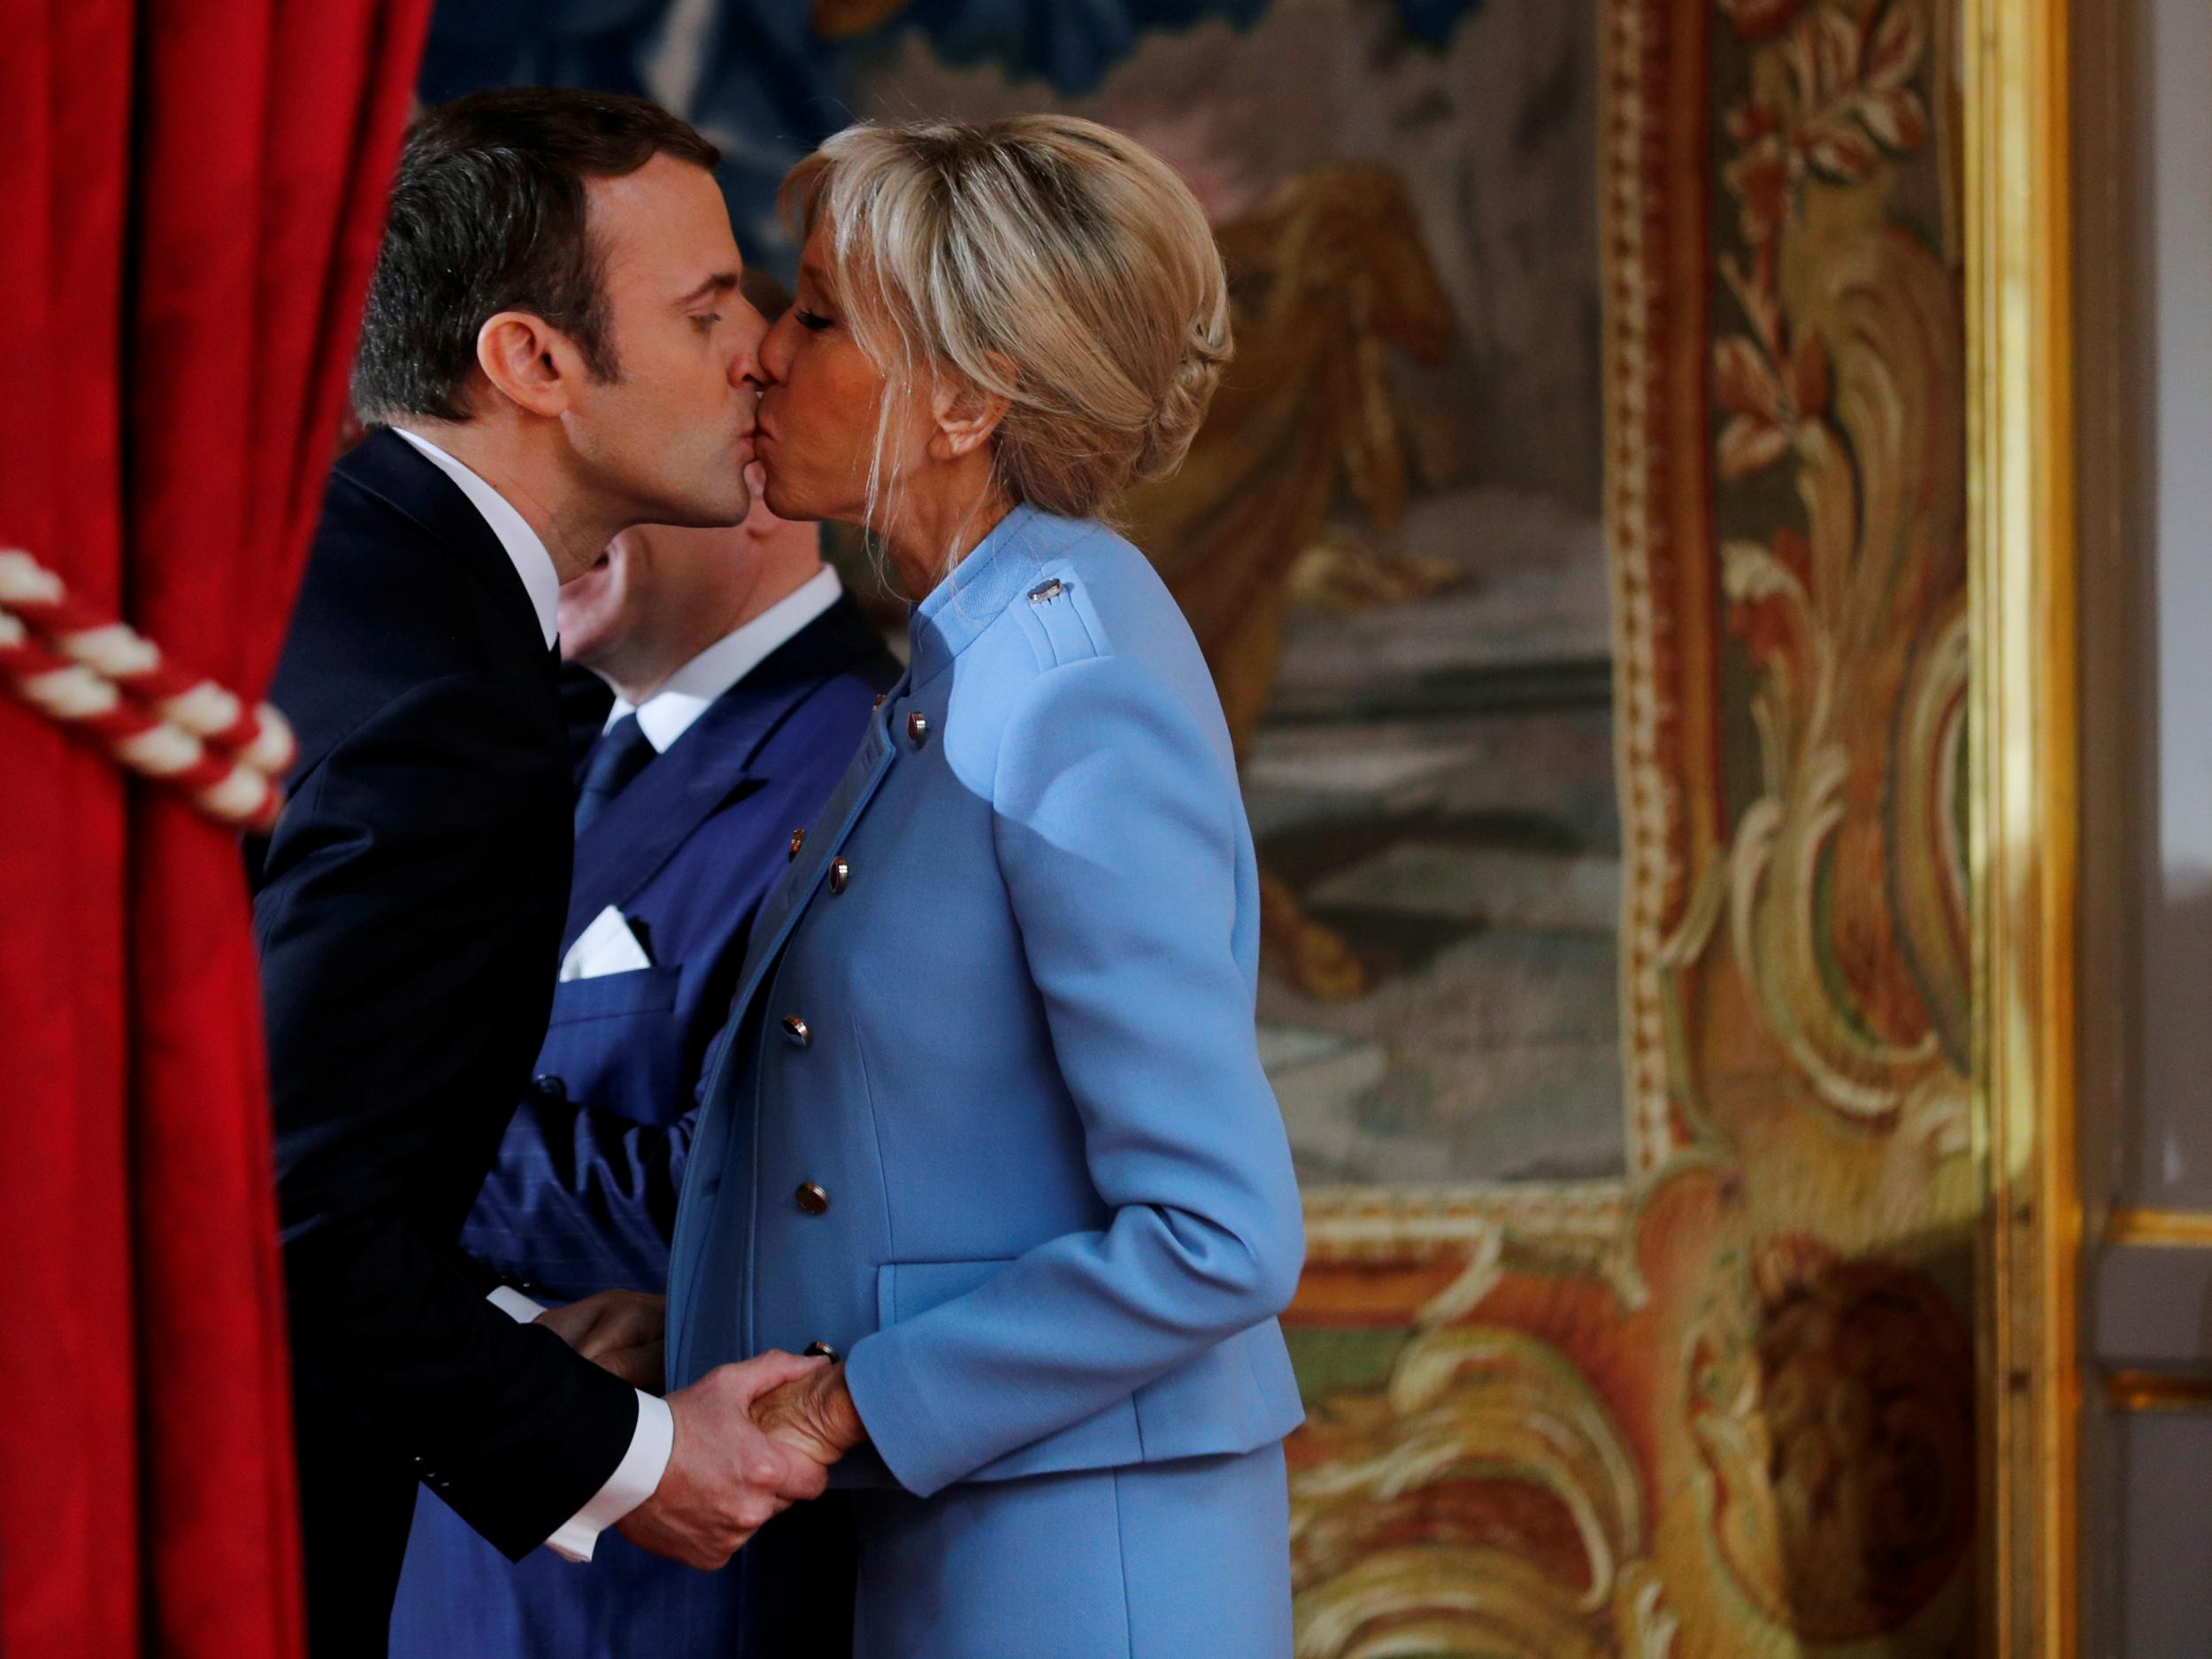 recipe: macron french have no culture [25]